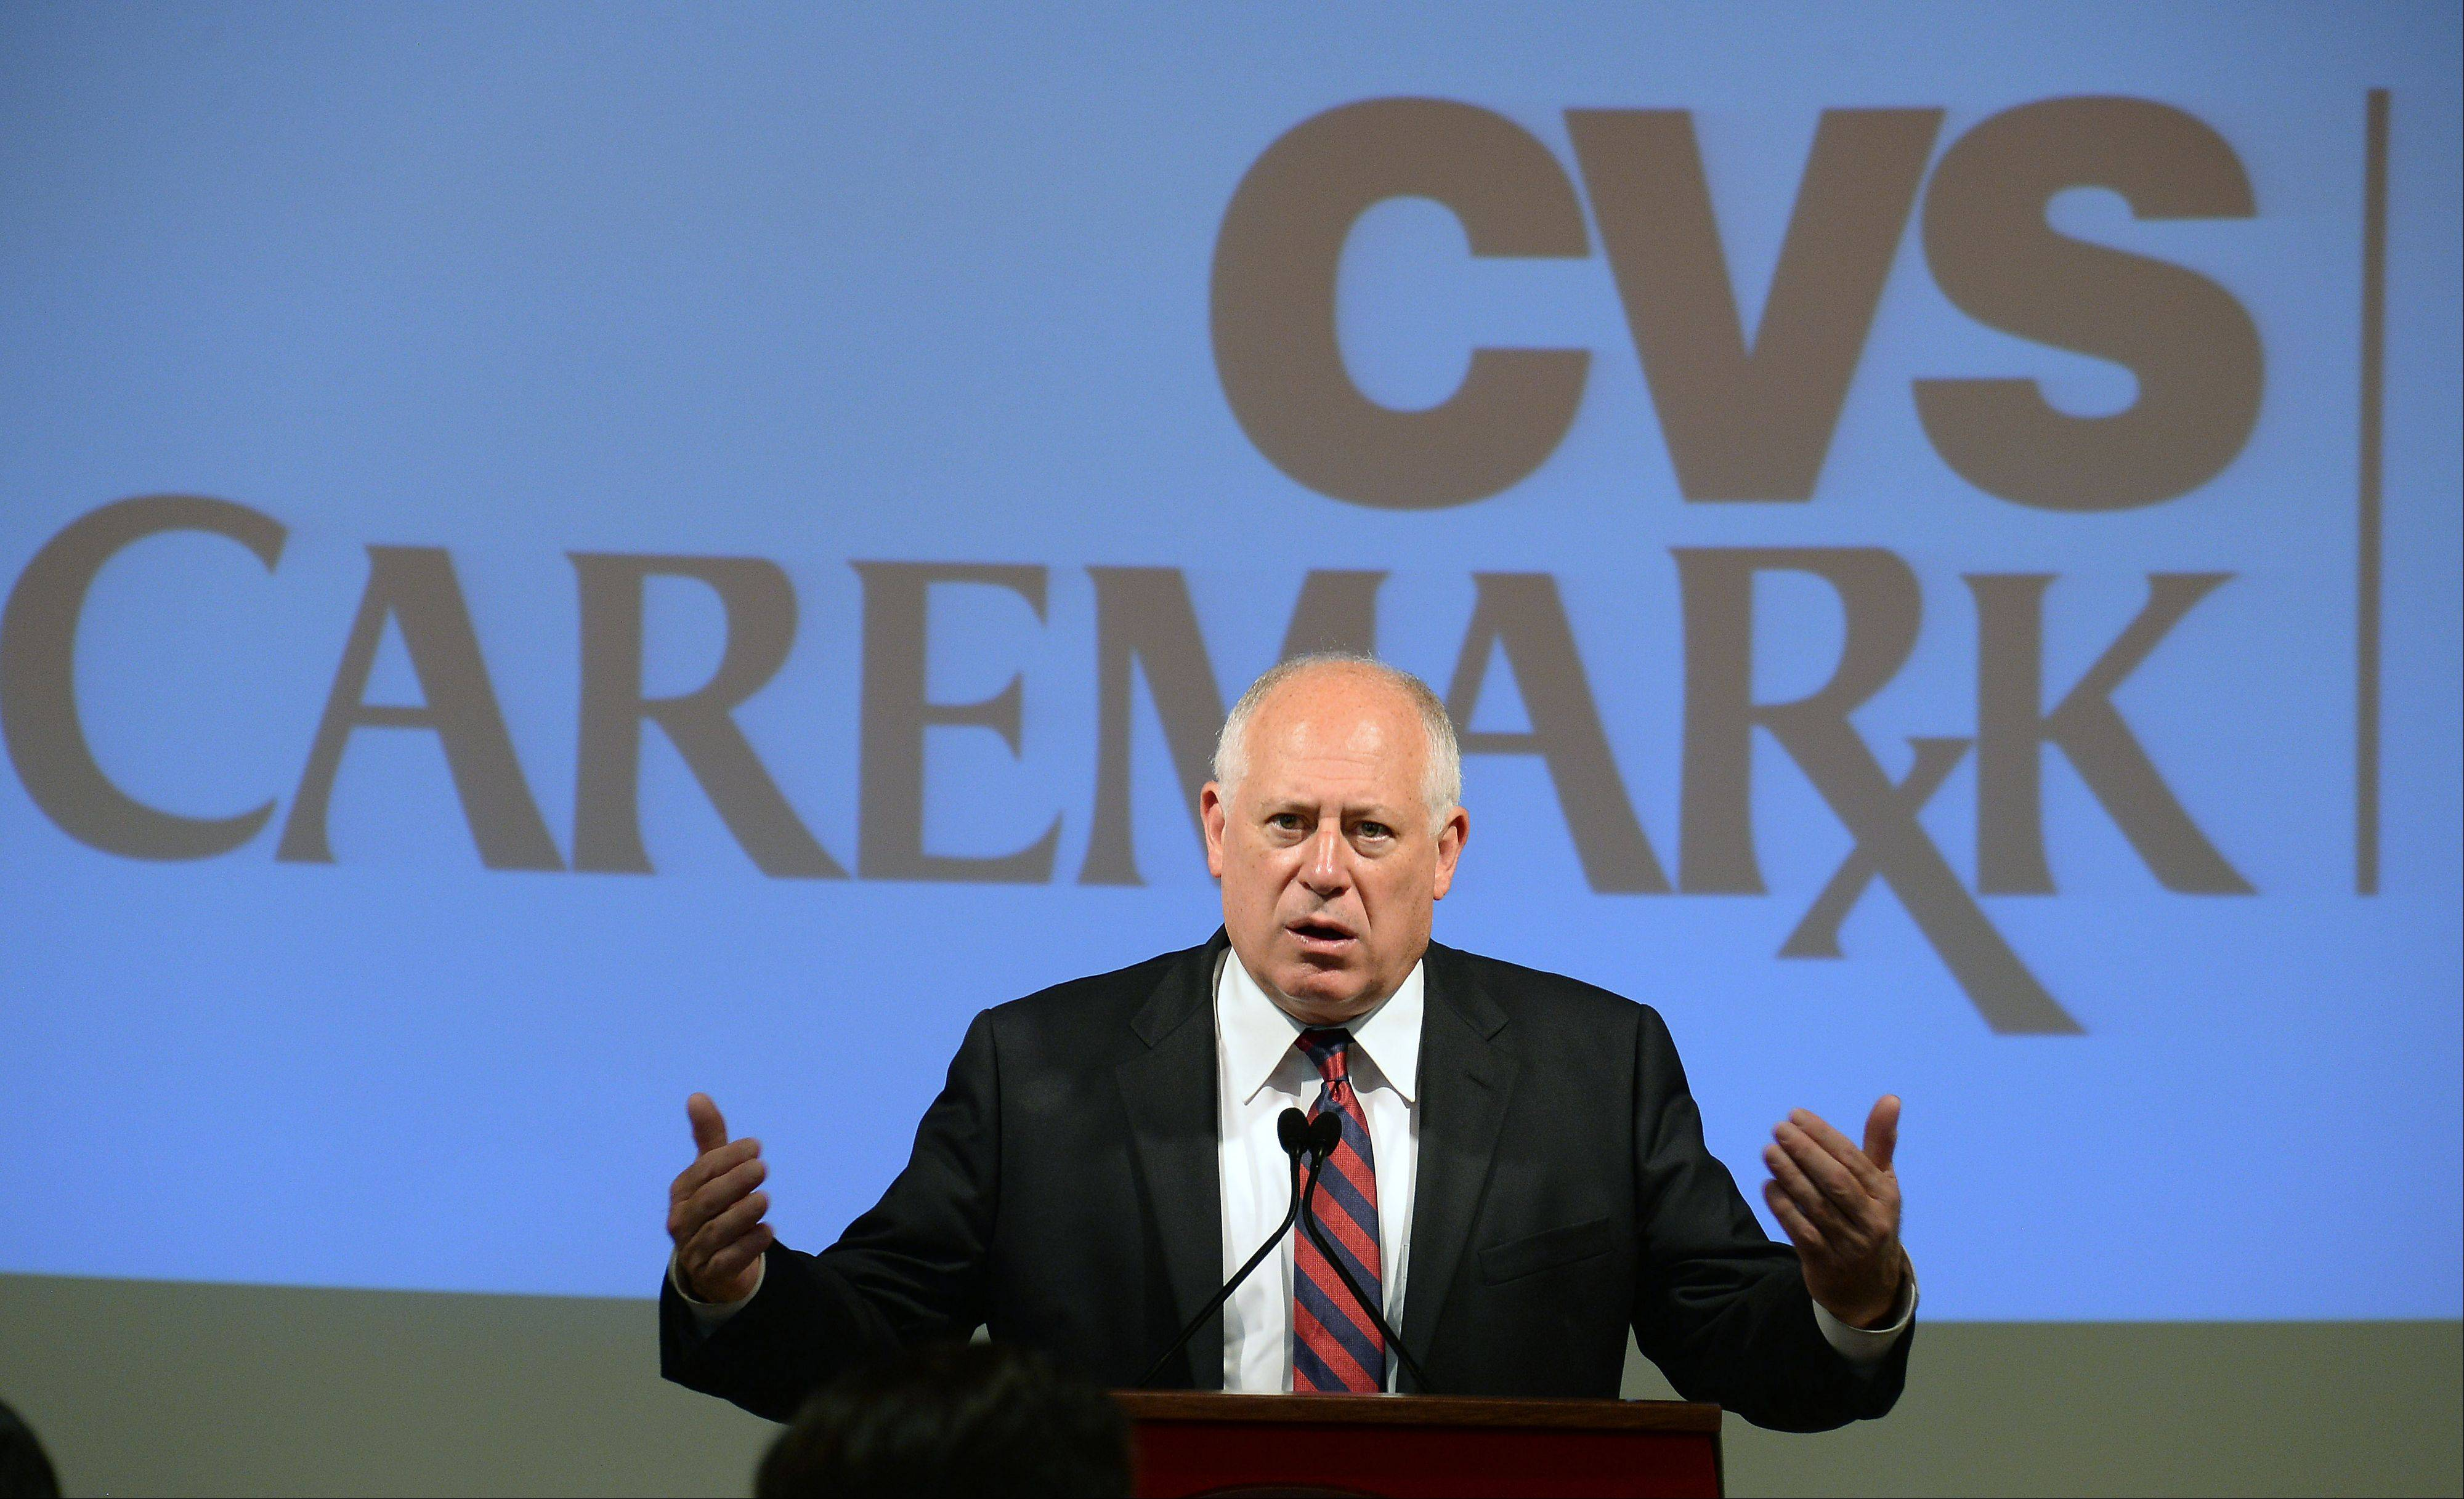 Illinois Gov. Pat Quinn speaks at the new CVS Caremark Mail Service Pharmacy and Customer Center in Mount Prospect, which was unveiled Tuesday.